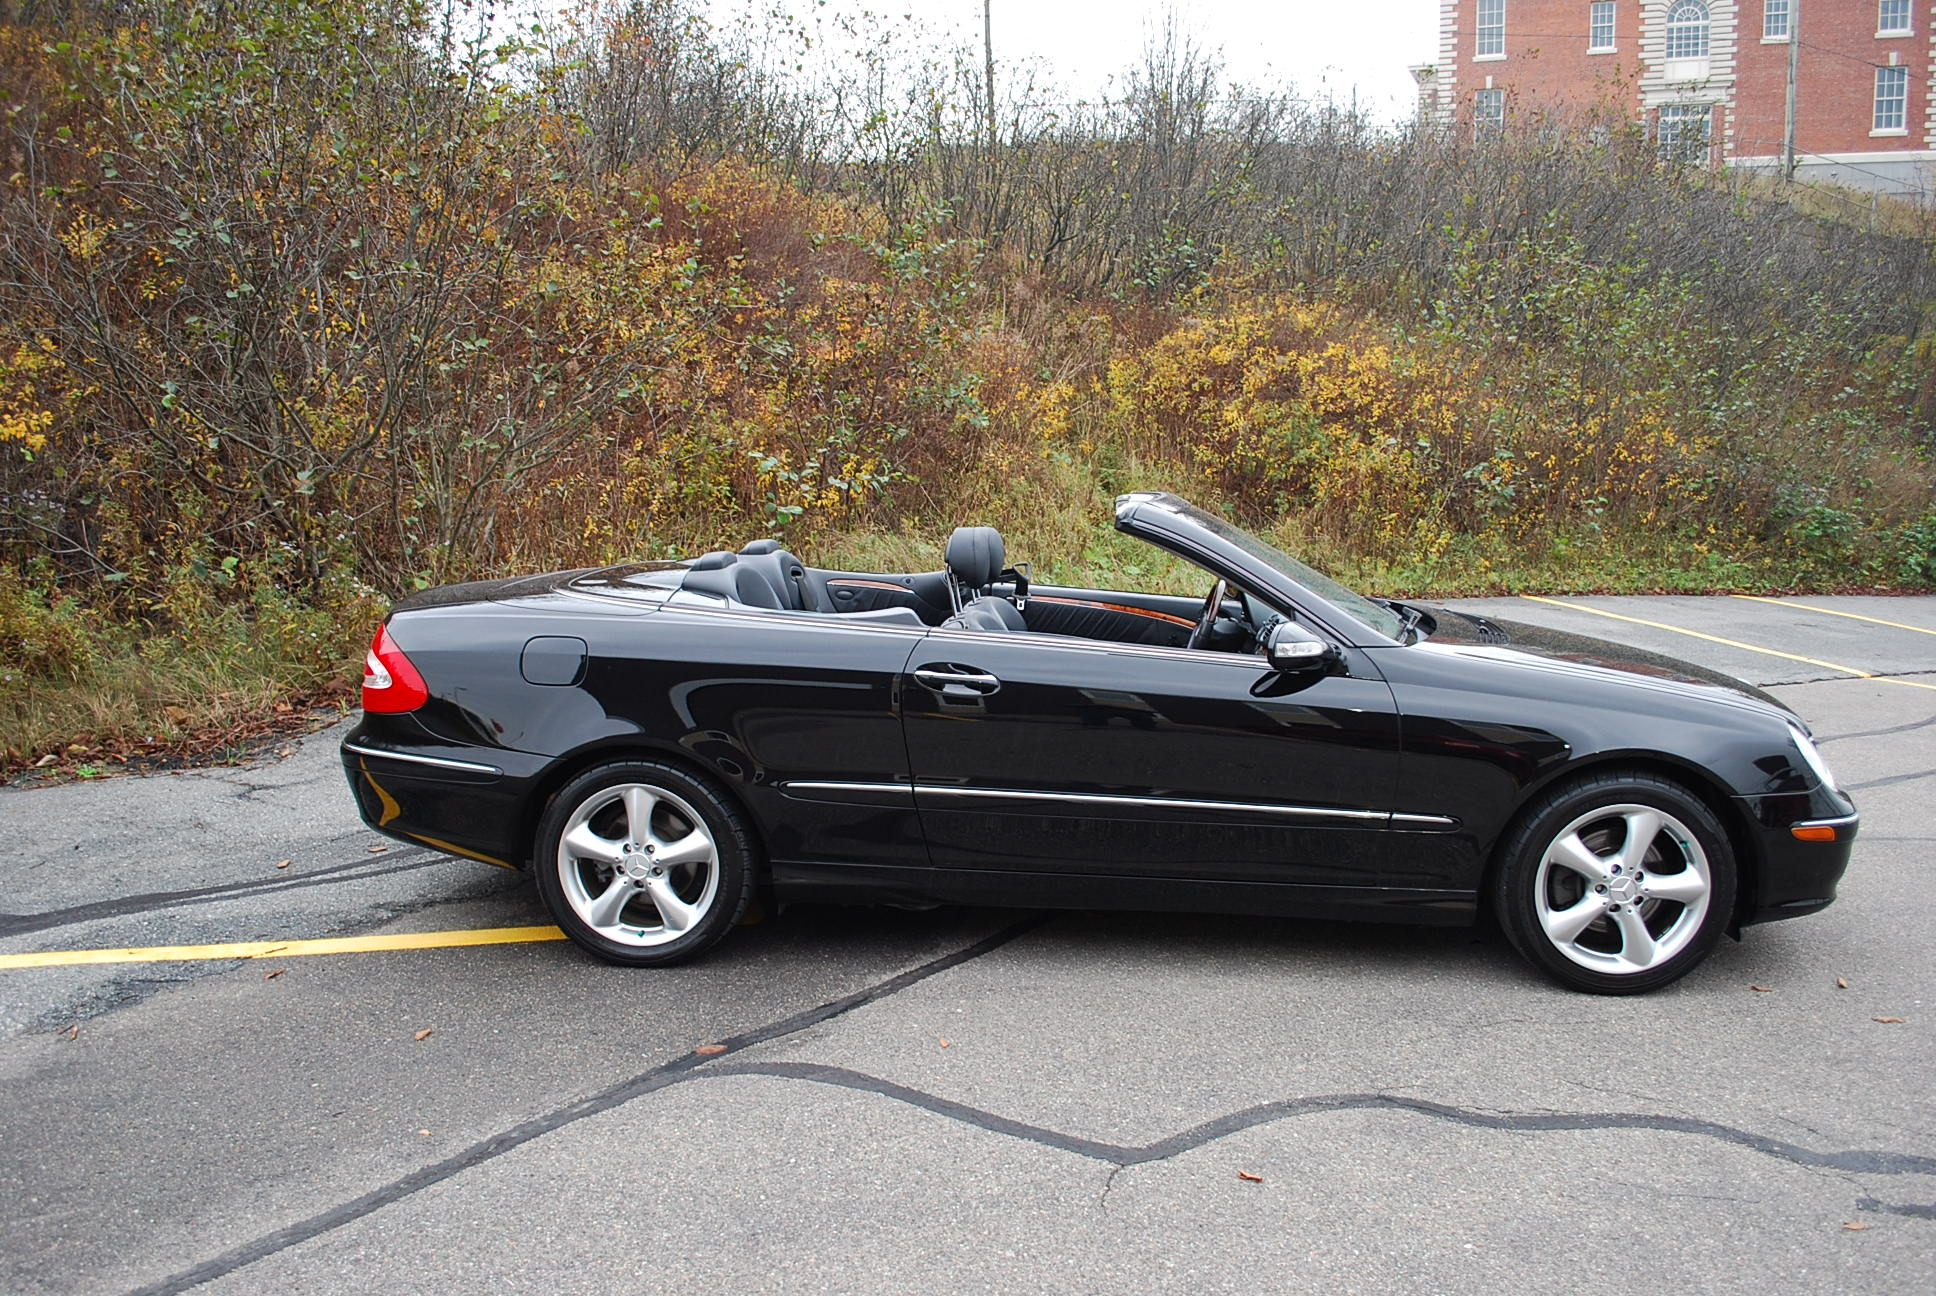 2005 mercedes benz clk320 cabriolet. Black Bedroom Furniture Sets. Home Design Ideas